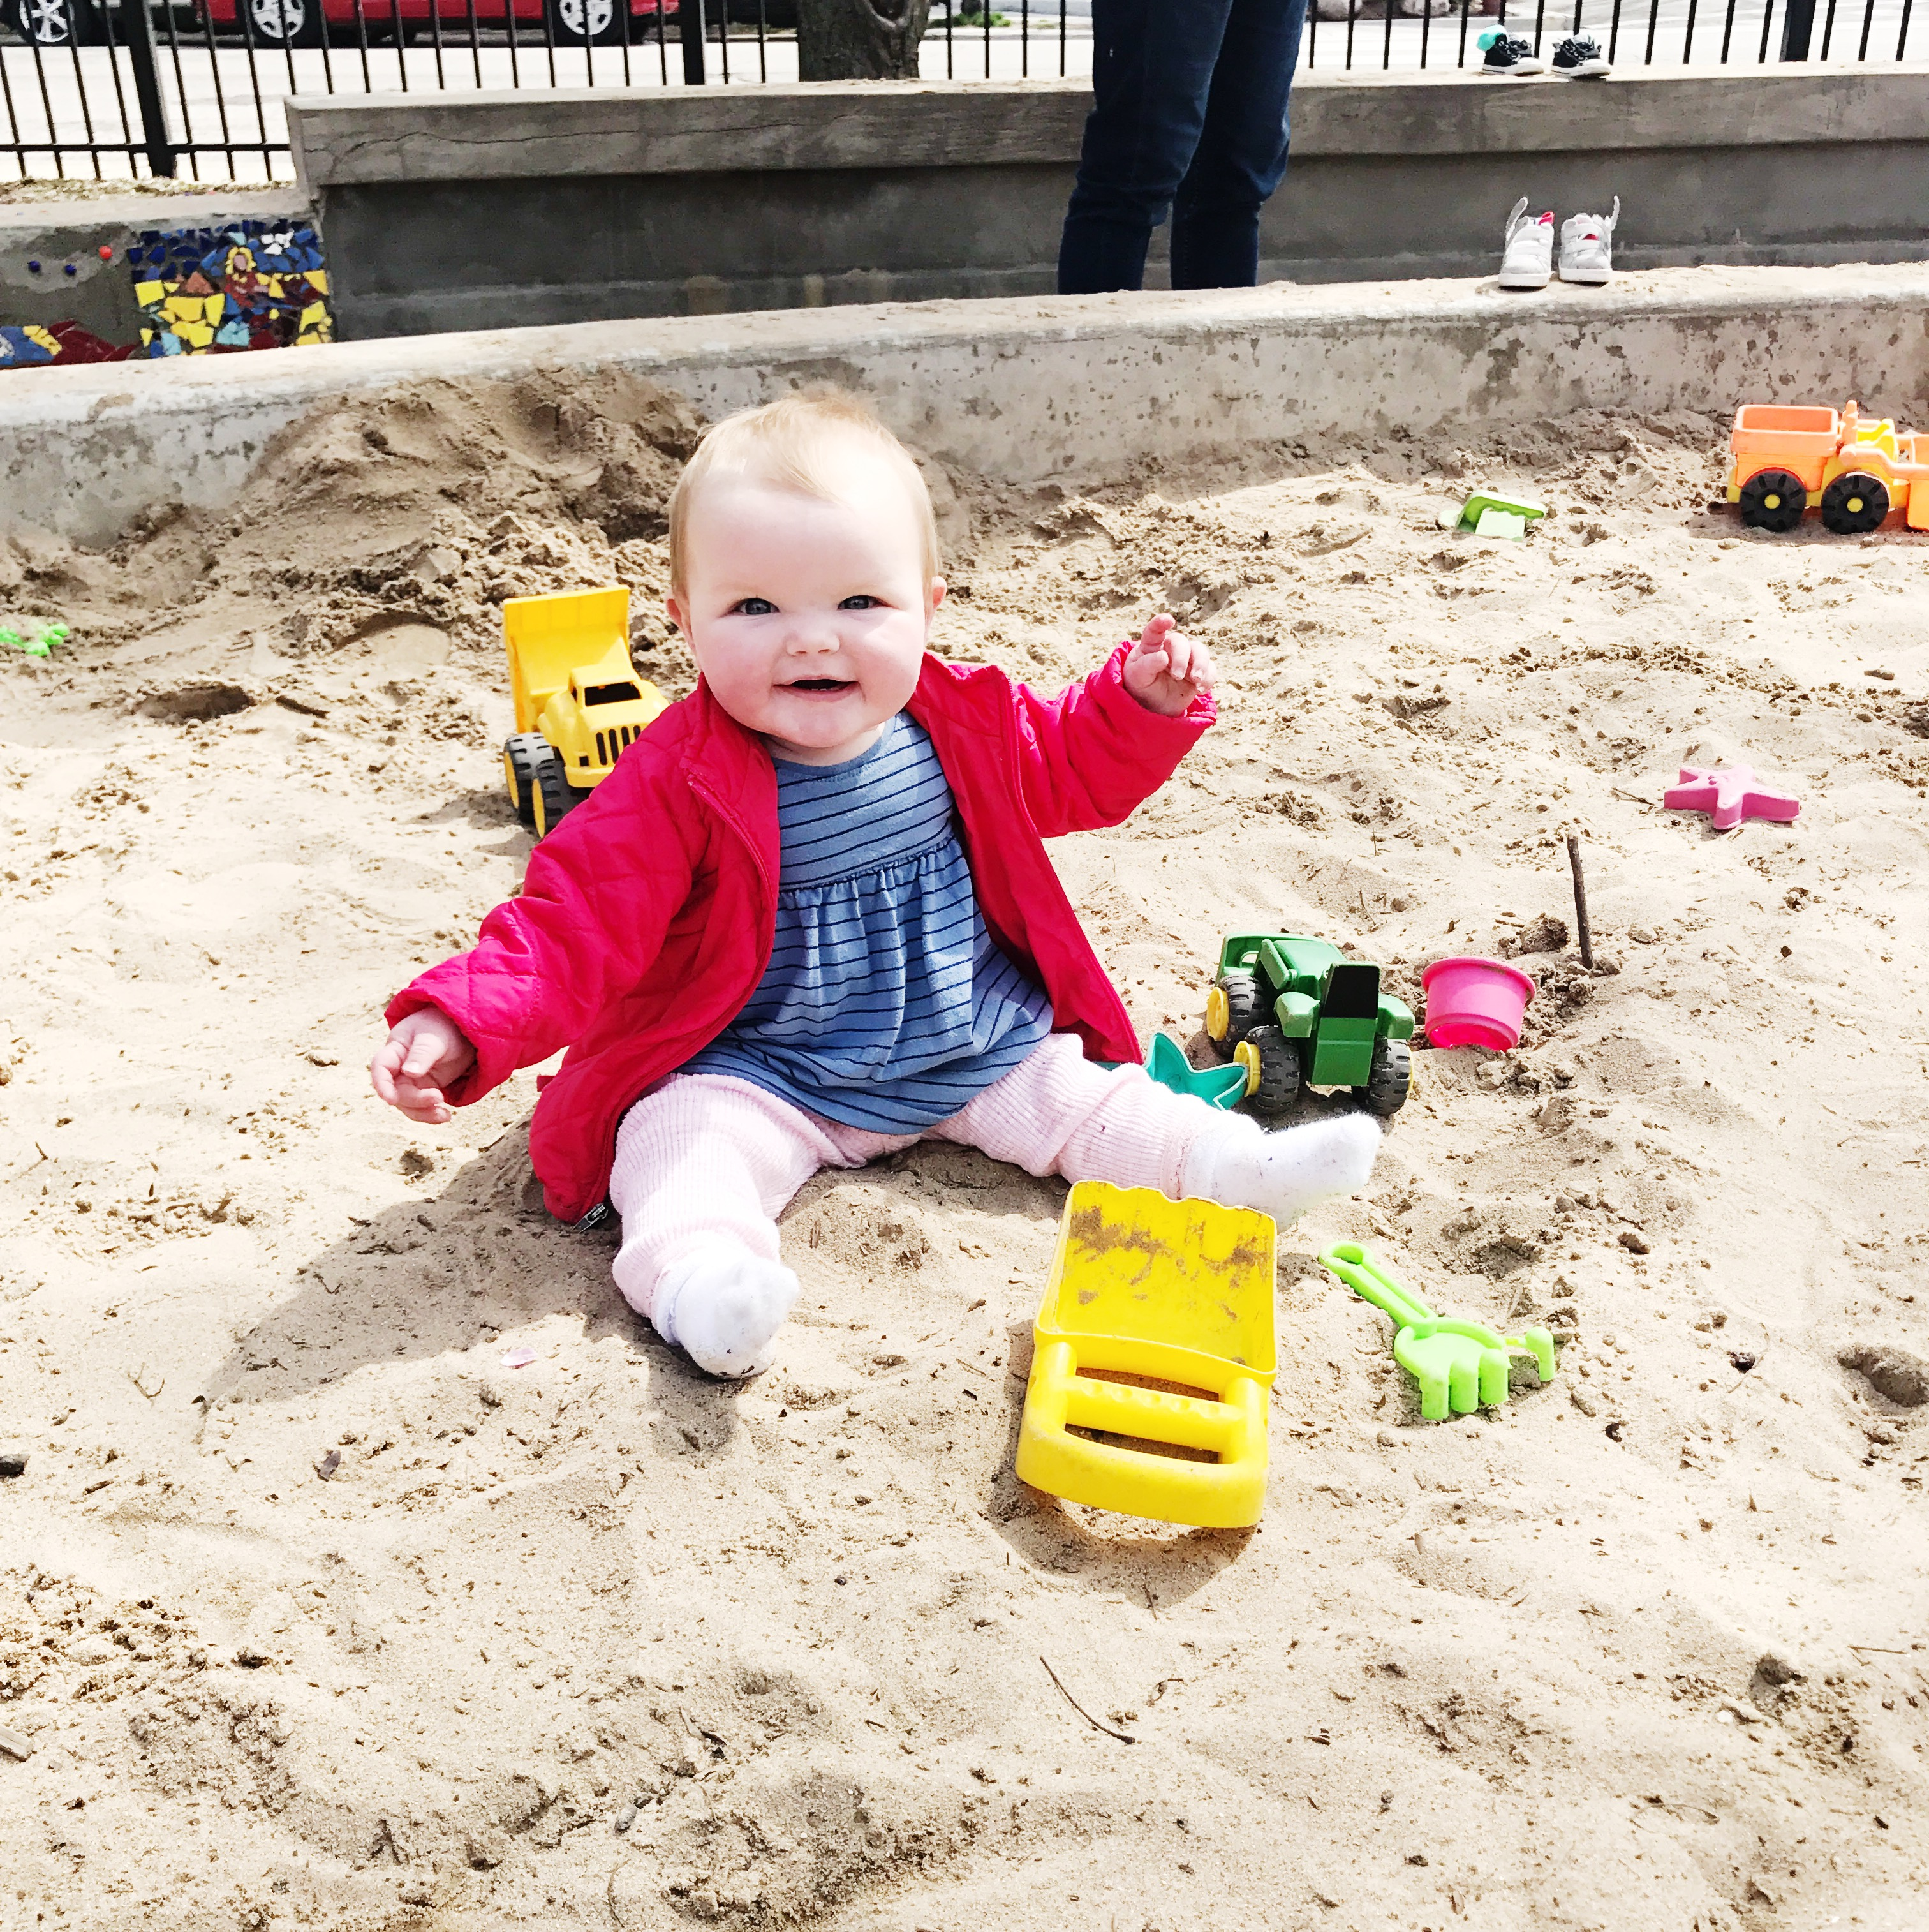 Emma's been having so much fun in the sandbox in a nearby park lately. She's made a ton of friends, and hasn't eaten too much sand. Miracle!